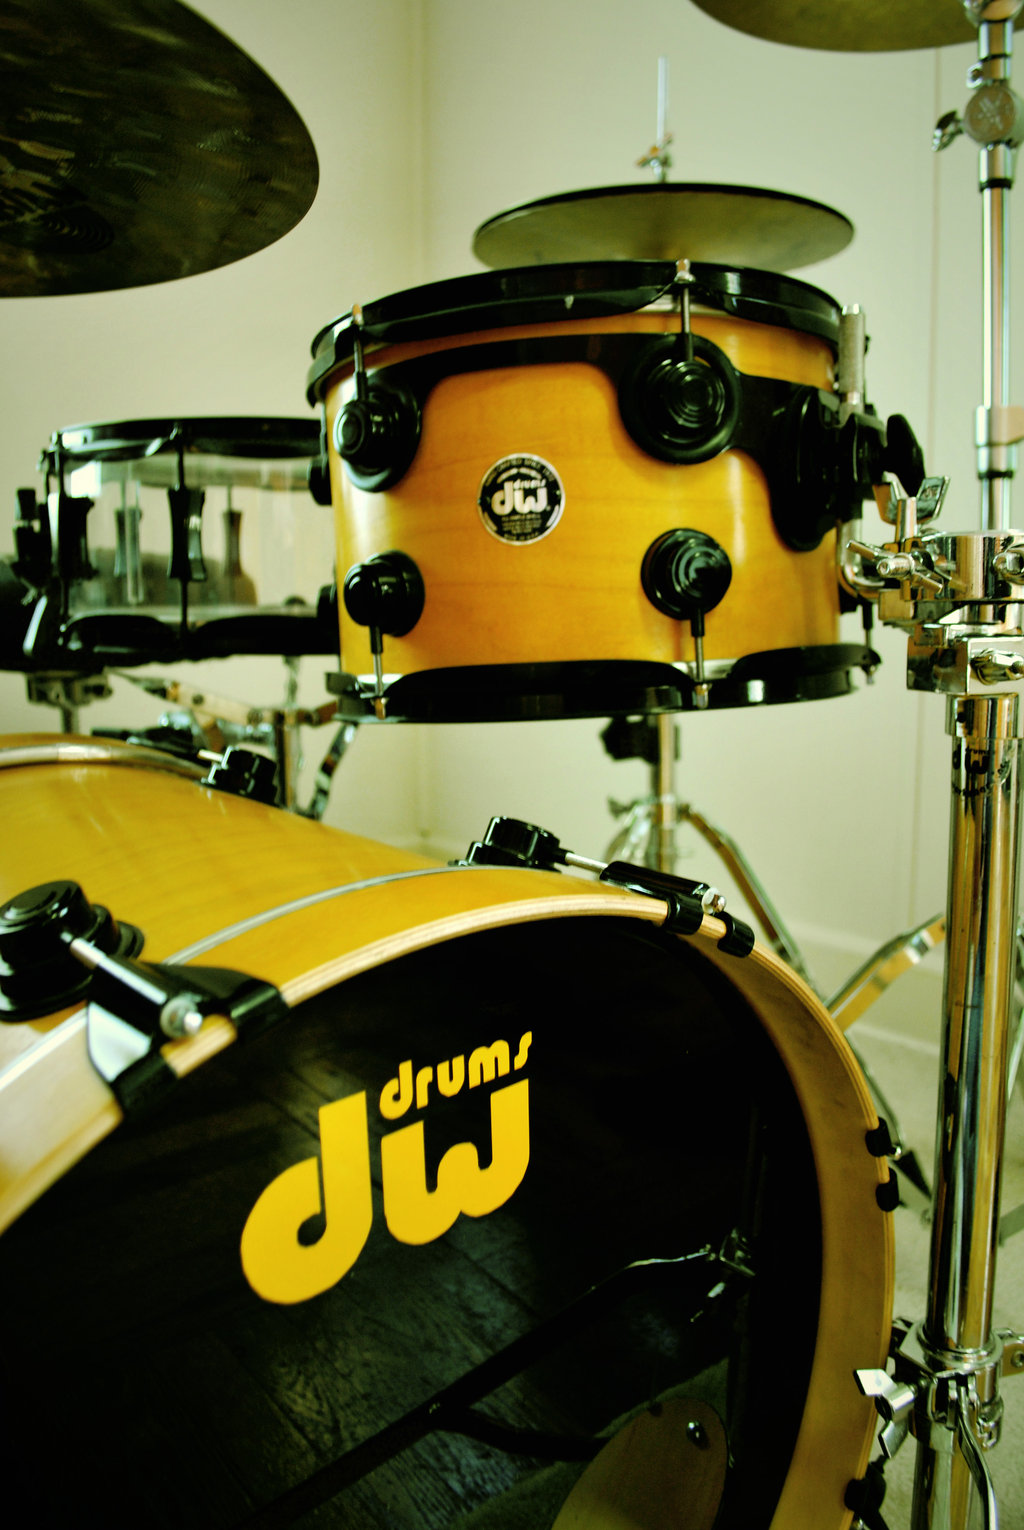 Dw Drums Wallpapers Imagen Dw Drums Wallpapers Fondo Dw Drums 1024x1530